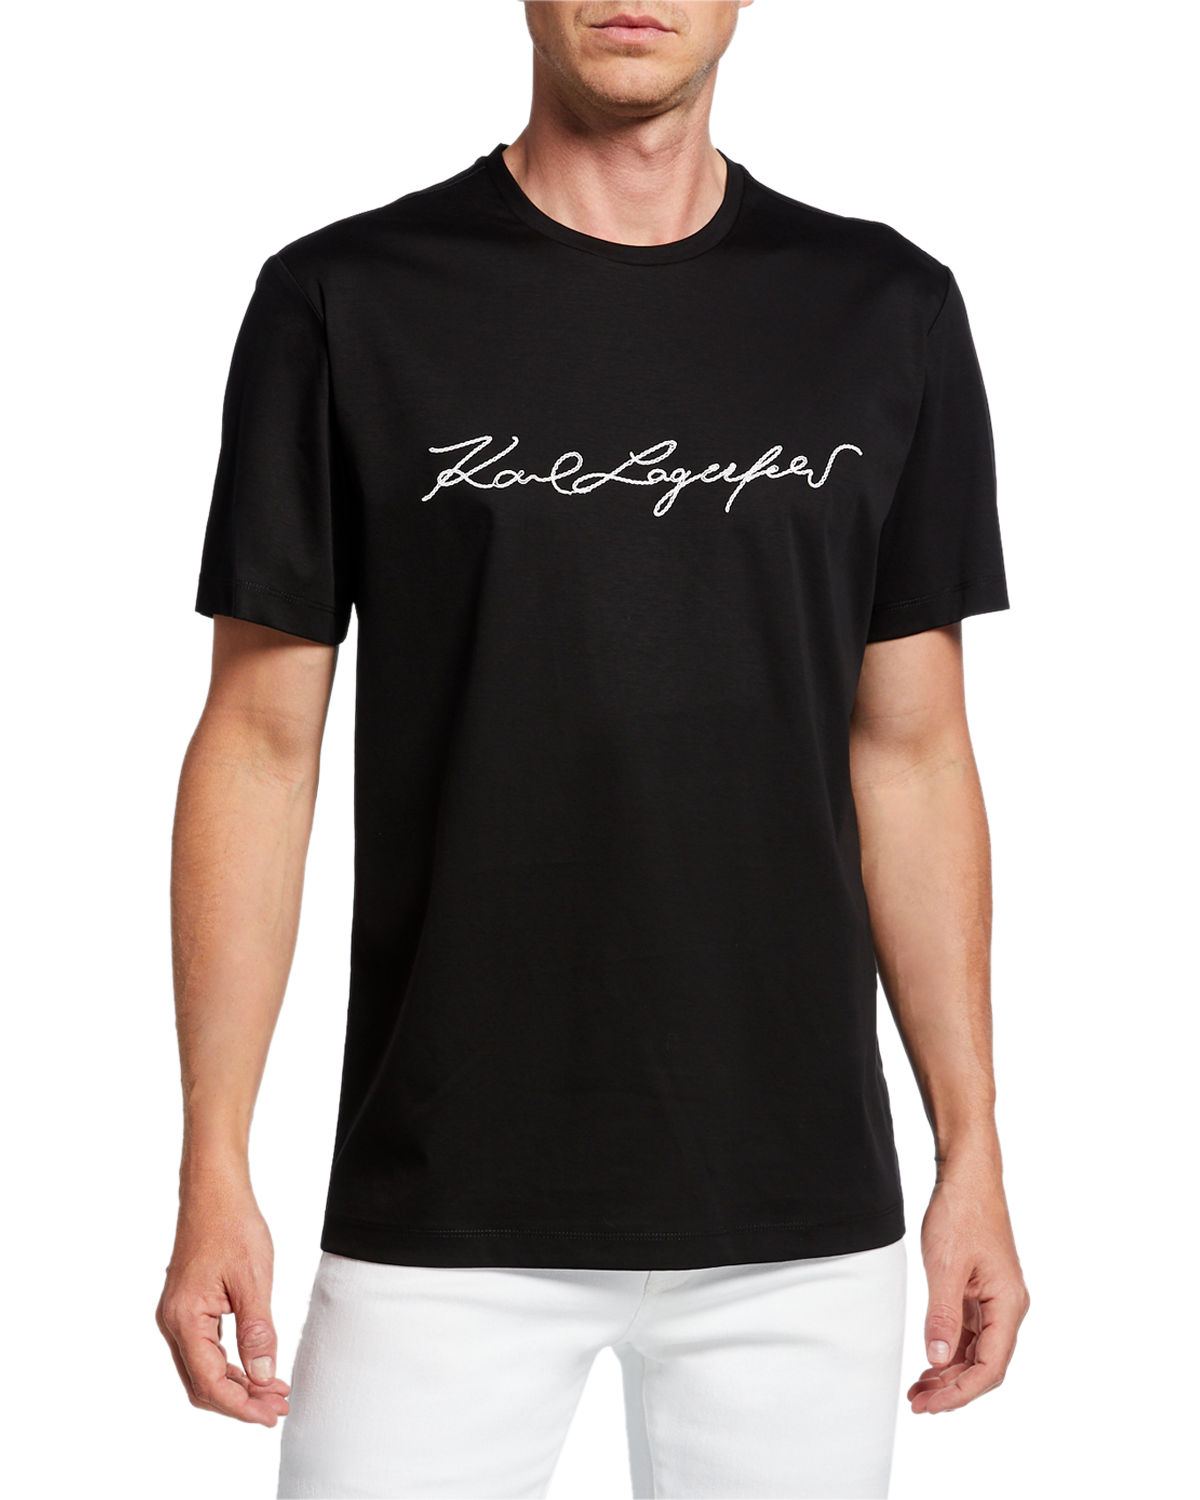 Karl Lagerfeld T-shirts MEN'S CREWNECK LOGO SIGNATURE T-SHIRT